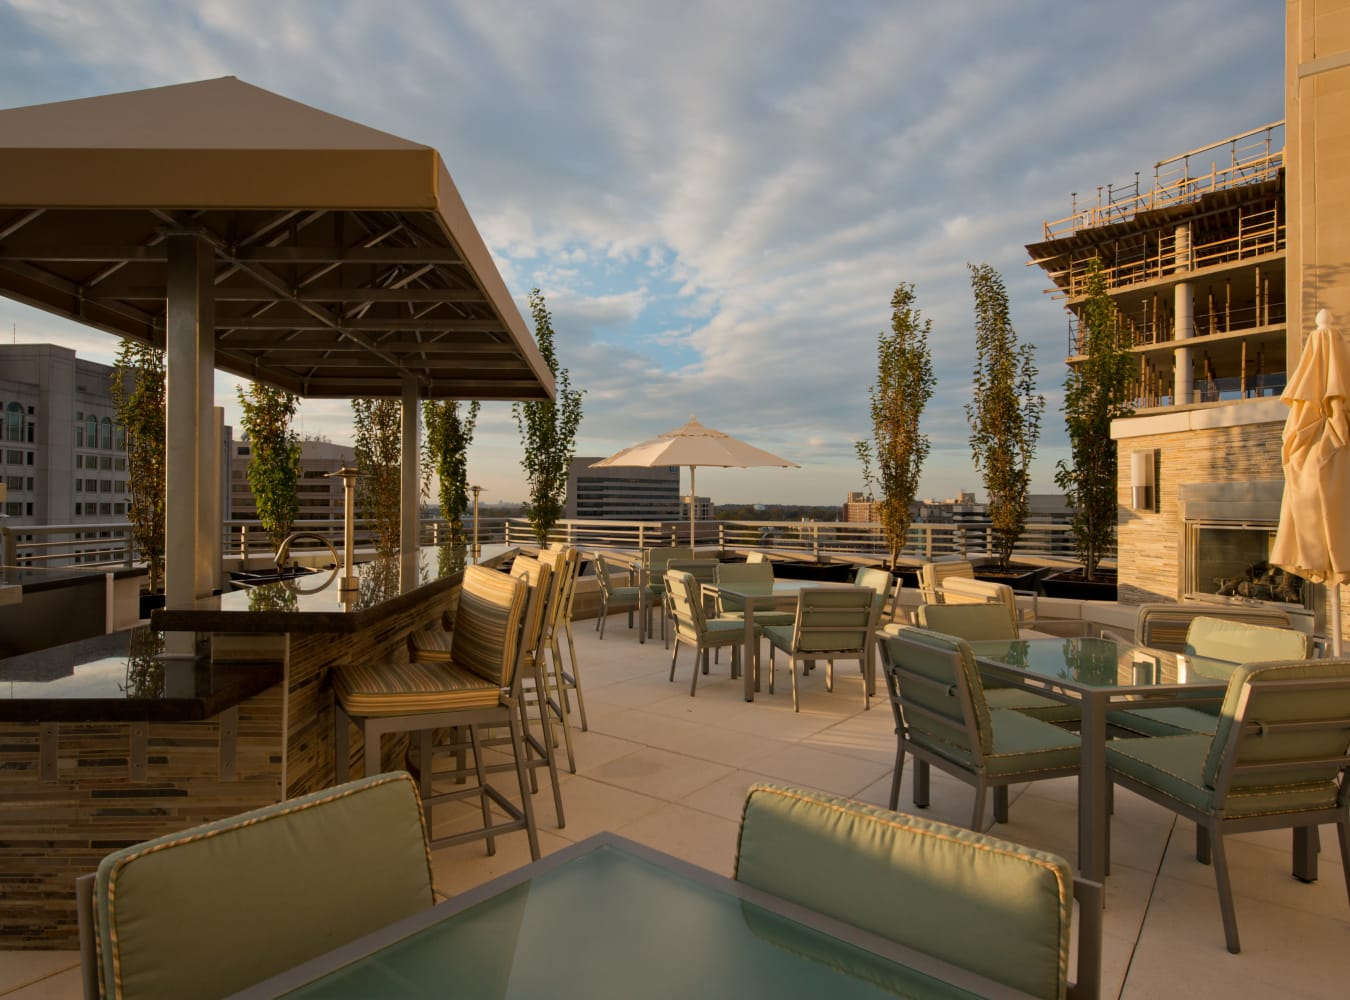 A rooftop lounge with tables and chairs for eating at Solaire 1150 Ripley in Silver Spring, Maryland